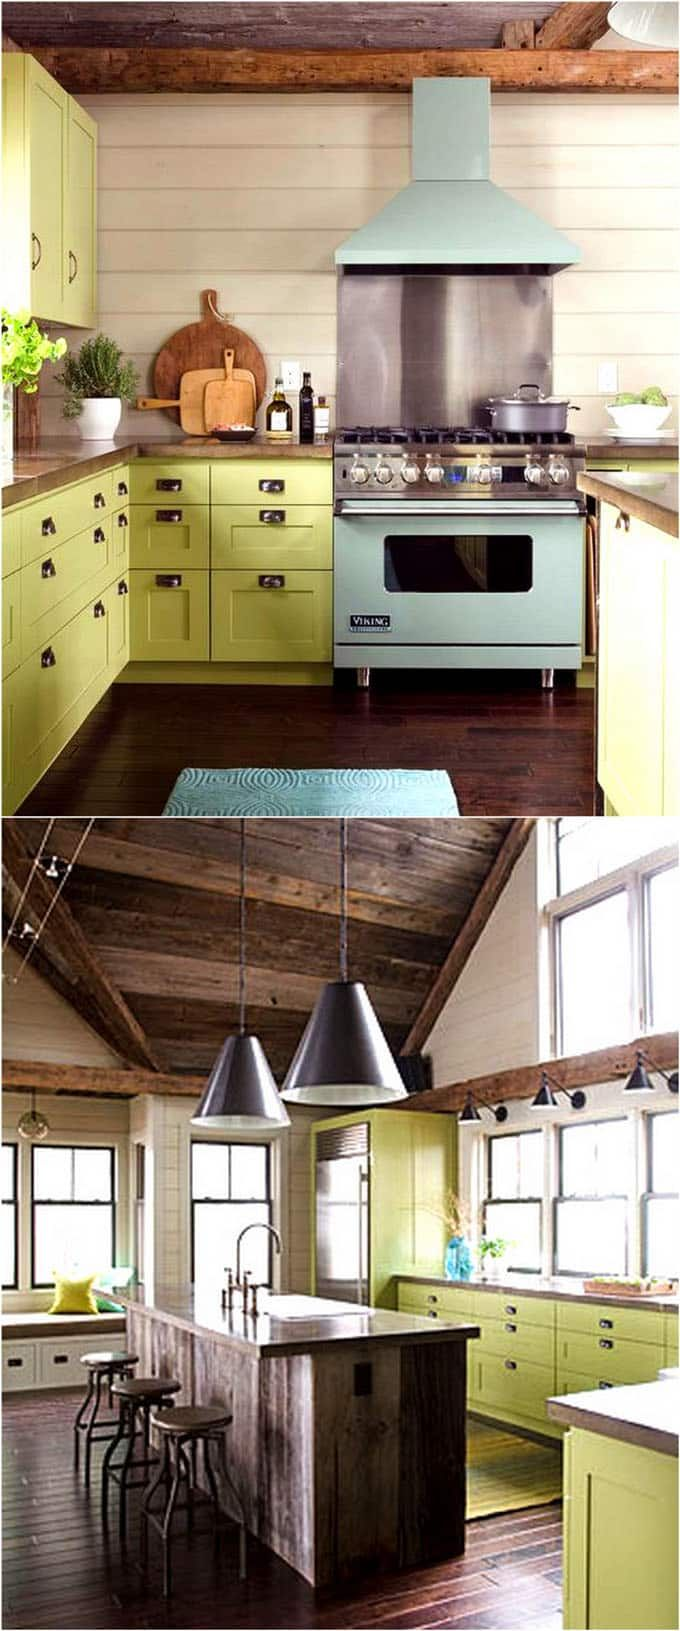 color kitchen ideas paint for full of colors cabinets small design size country cabinet